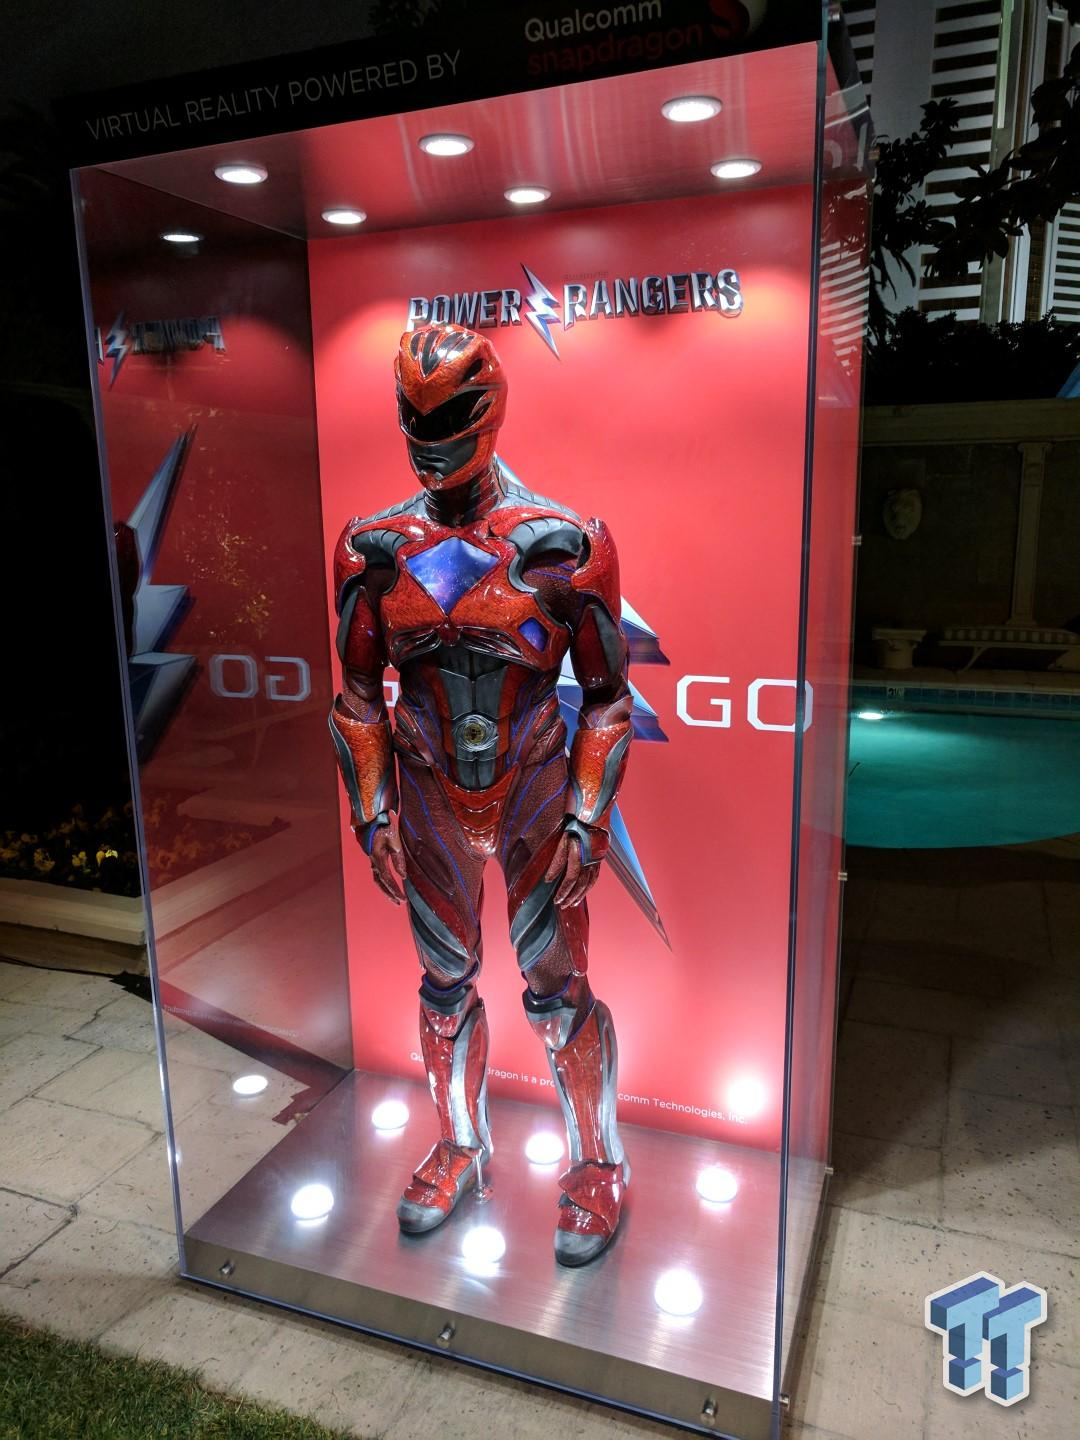 Qualcomm, Power Rangers, and VR - quite the mix